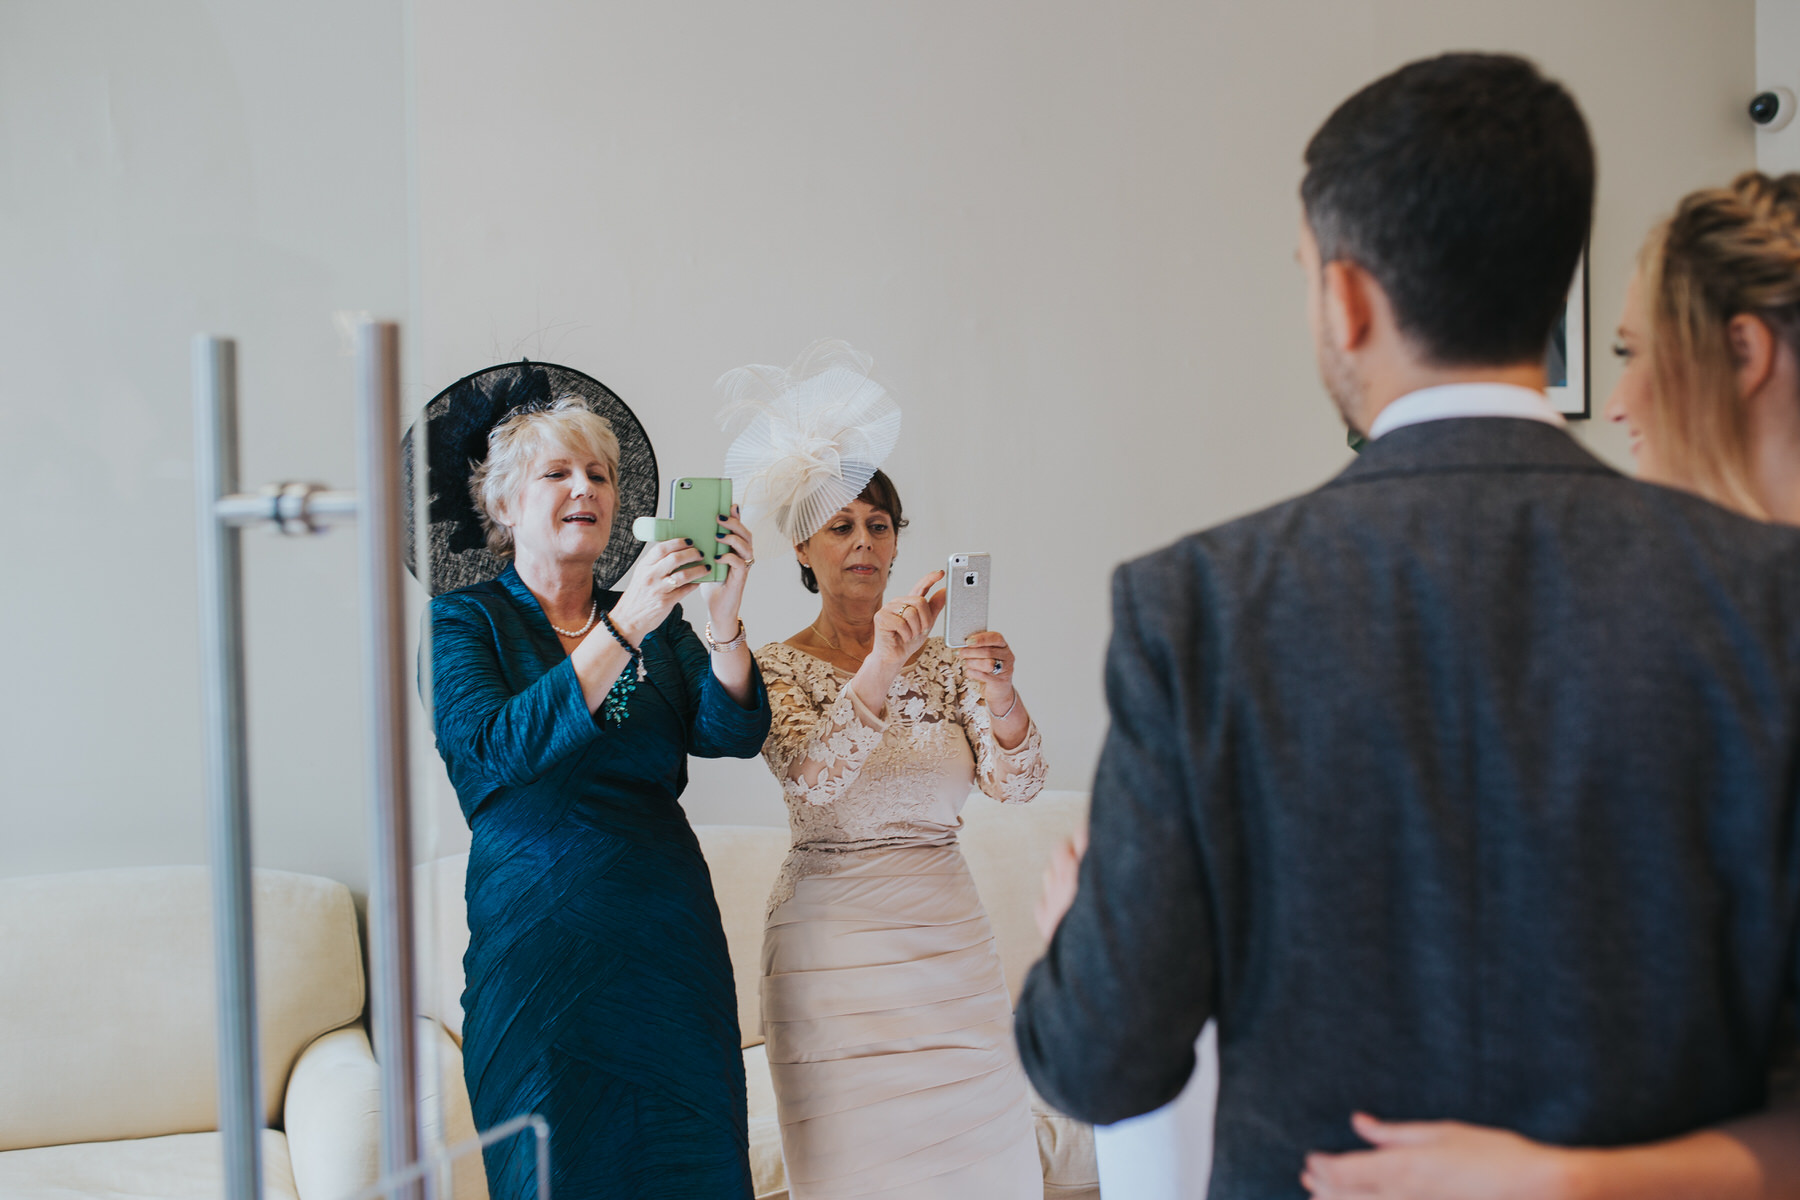 grooms mum brides mother taking photos on phones Asia House wedding London.jpg